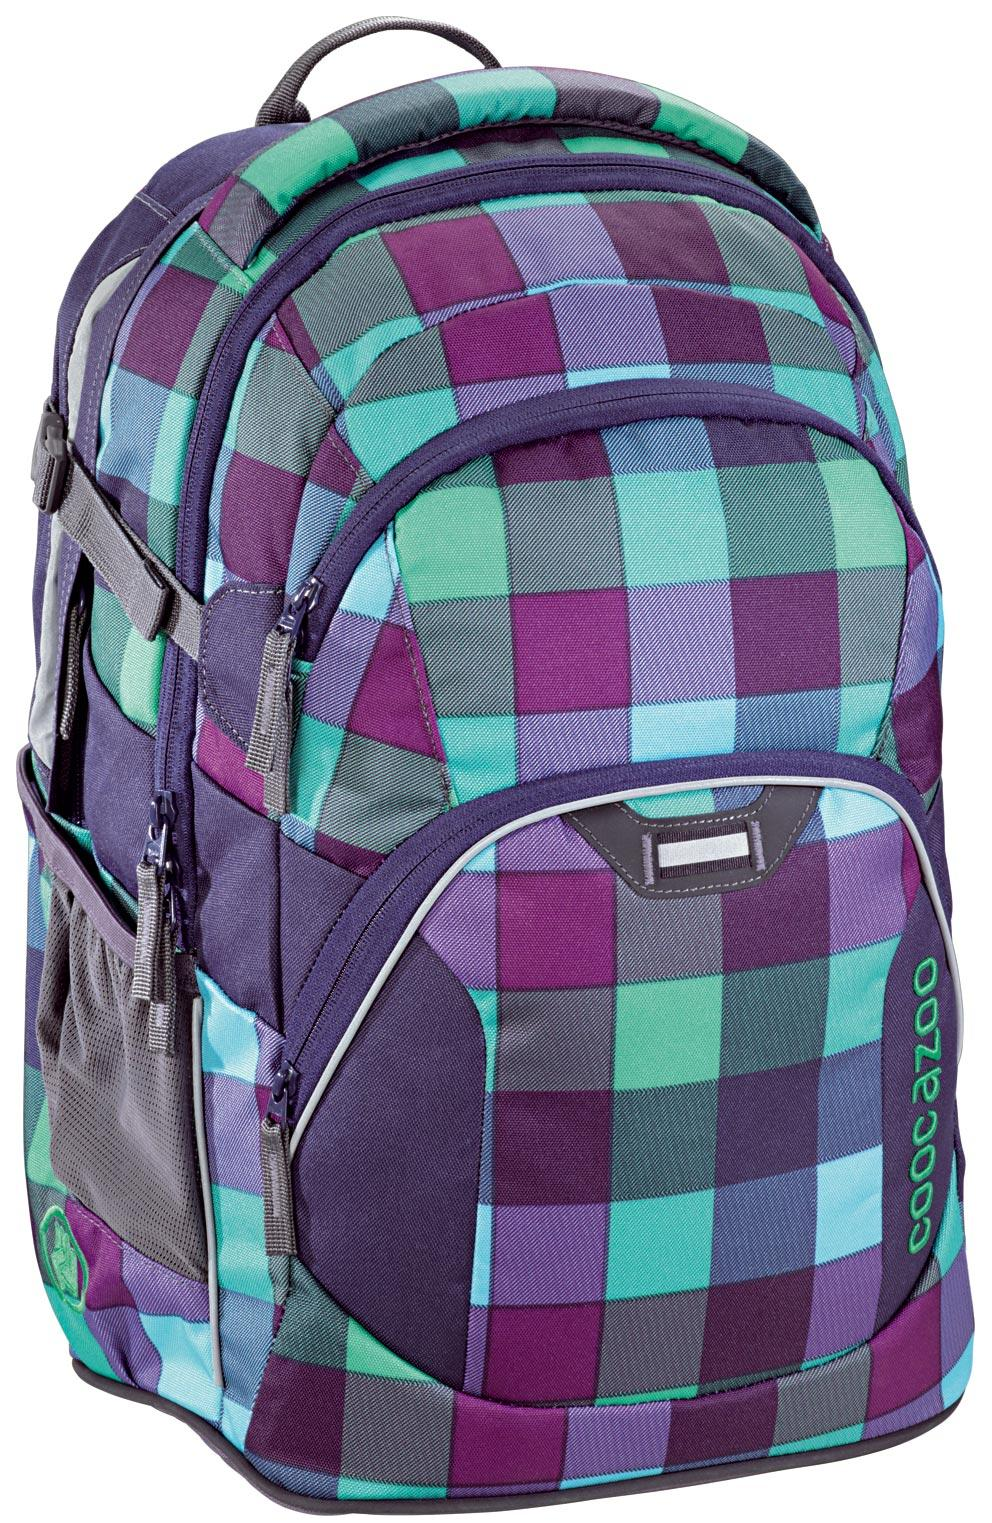 Plecak Coocazoo JobJobber II Green Purple District Hama 129956 PRS